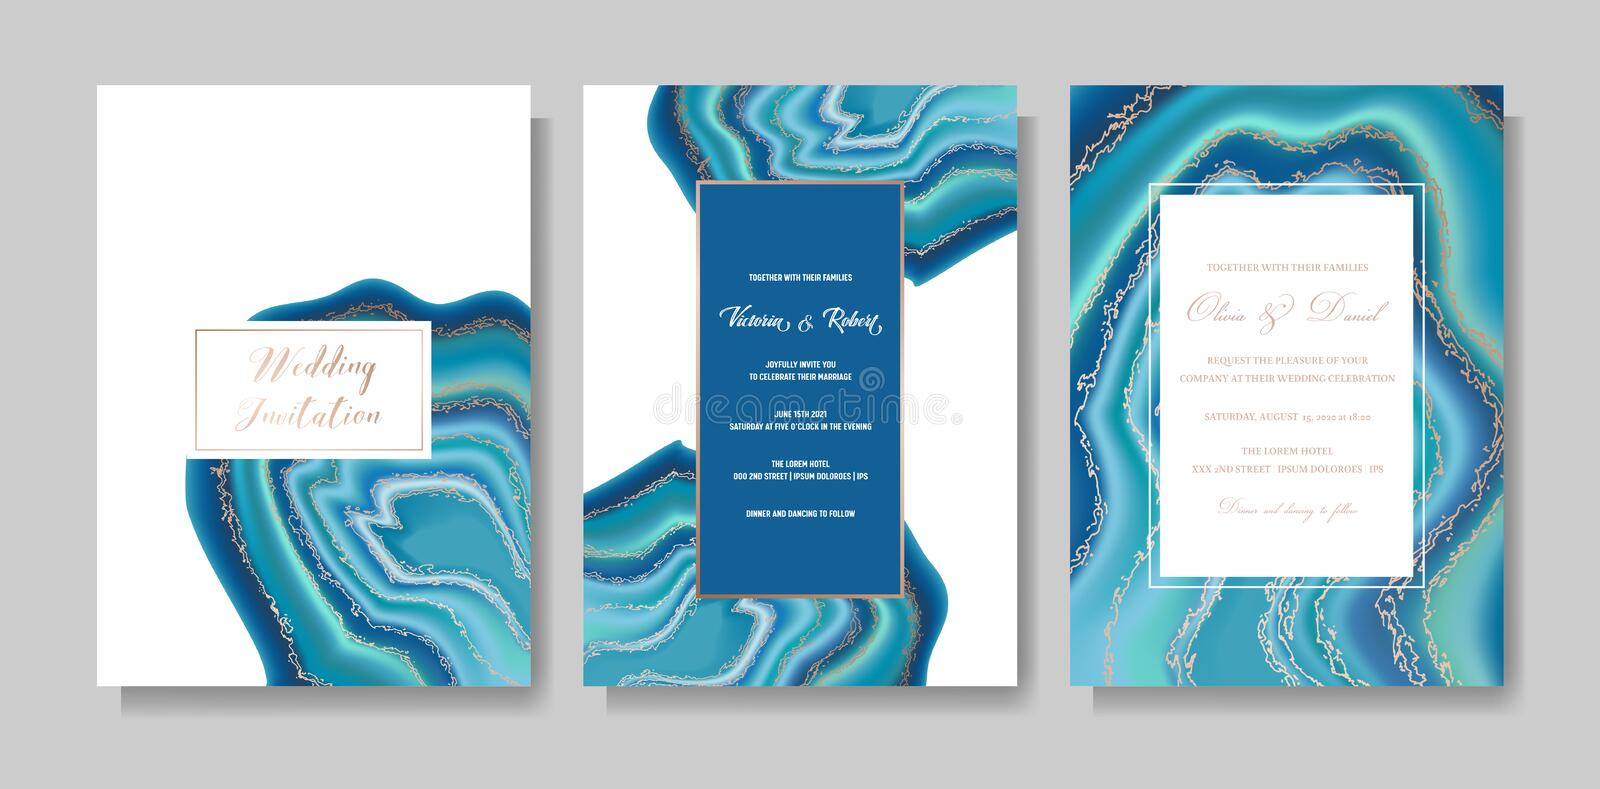 Wedding fashion geode or marble template, artistic covers design, colorful texture, realistic backgrounds Trendy pattern royalty free illustration